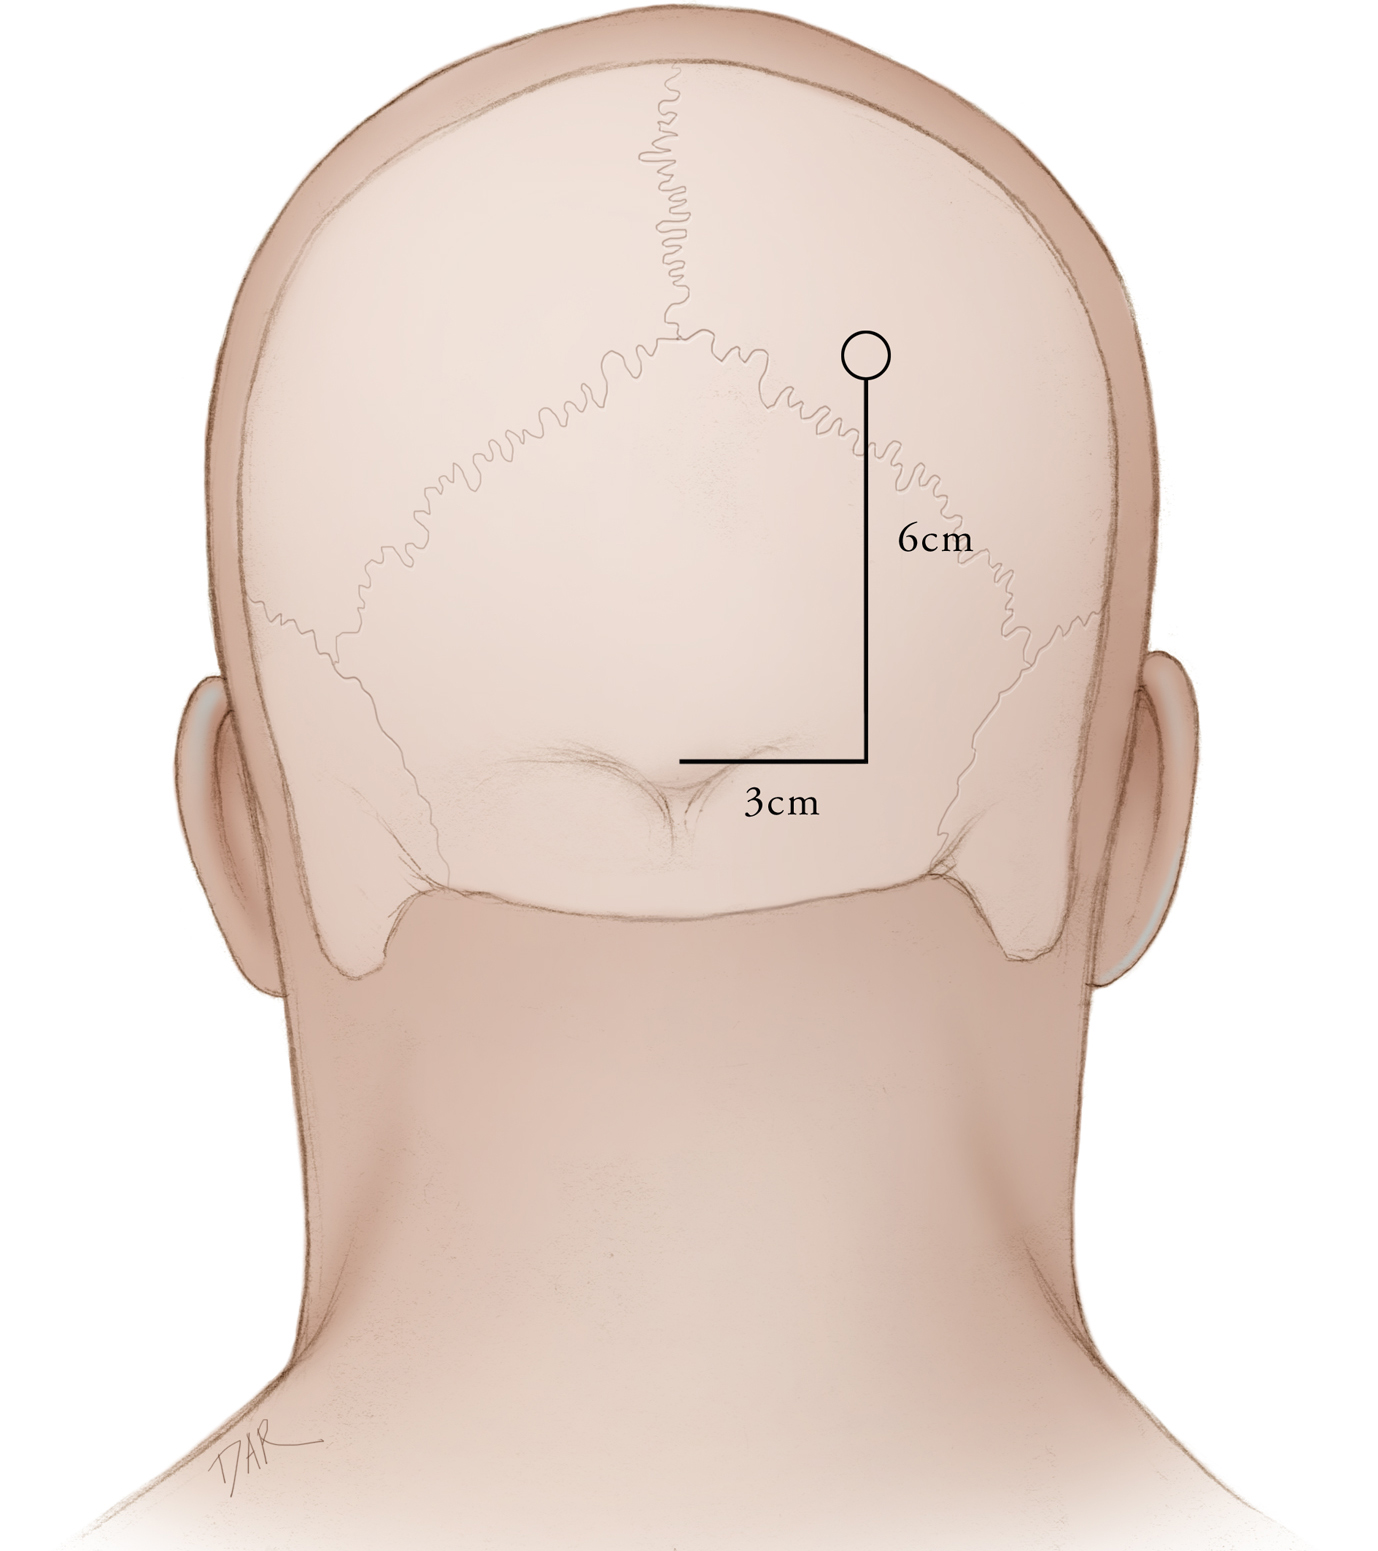 Figure 3: Frazier's point is defined as 3 cm lateral and 6 cm superior to the inion.